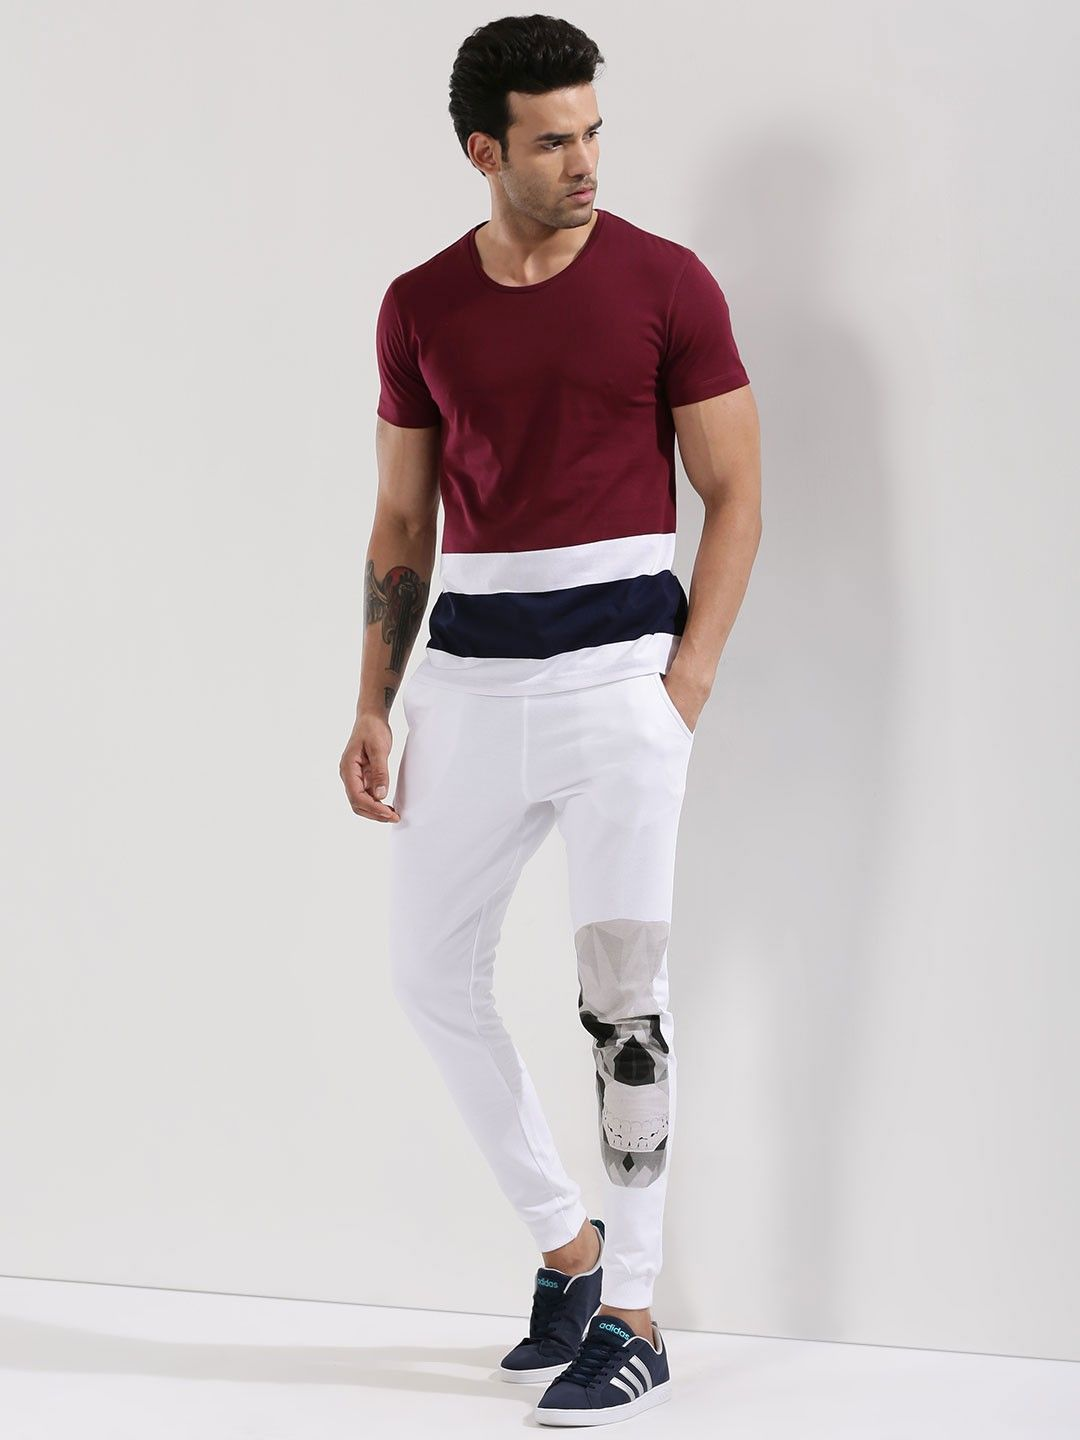 2235a47e8a4e Buy KOOVS Multi Color Striped T-Shirt online in India at best price.T